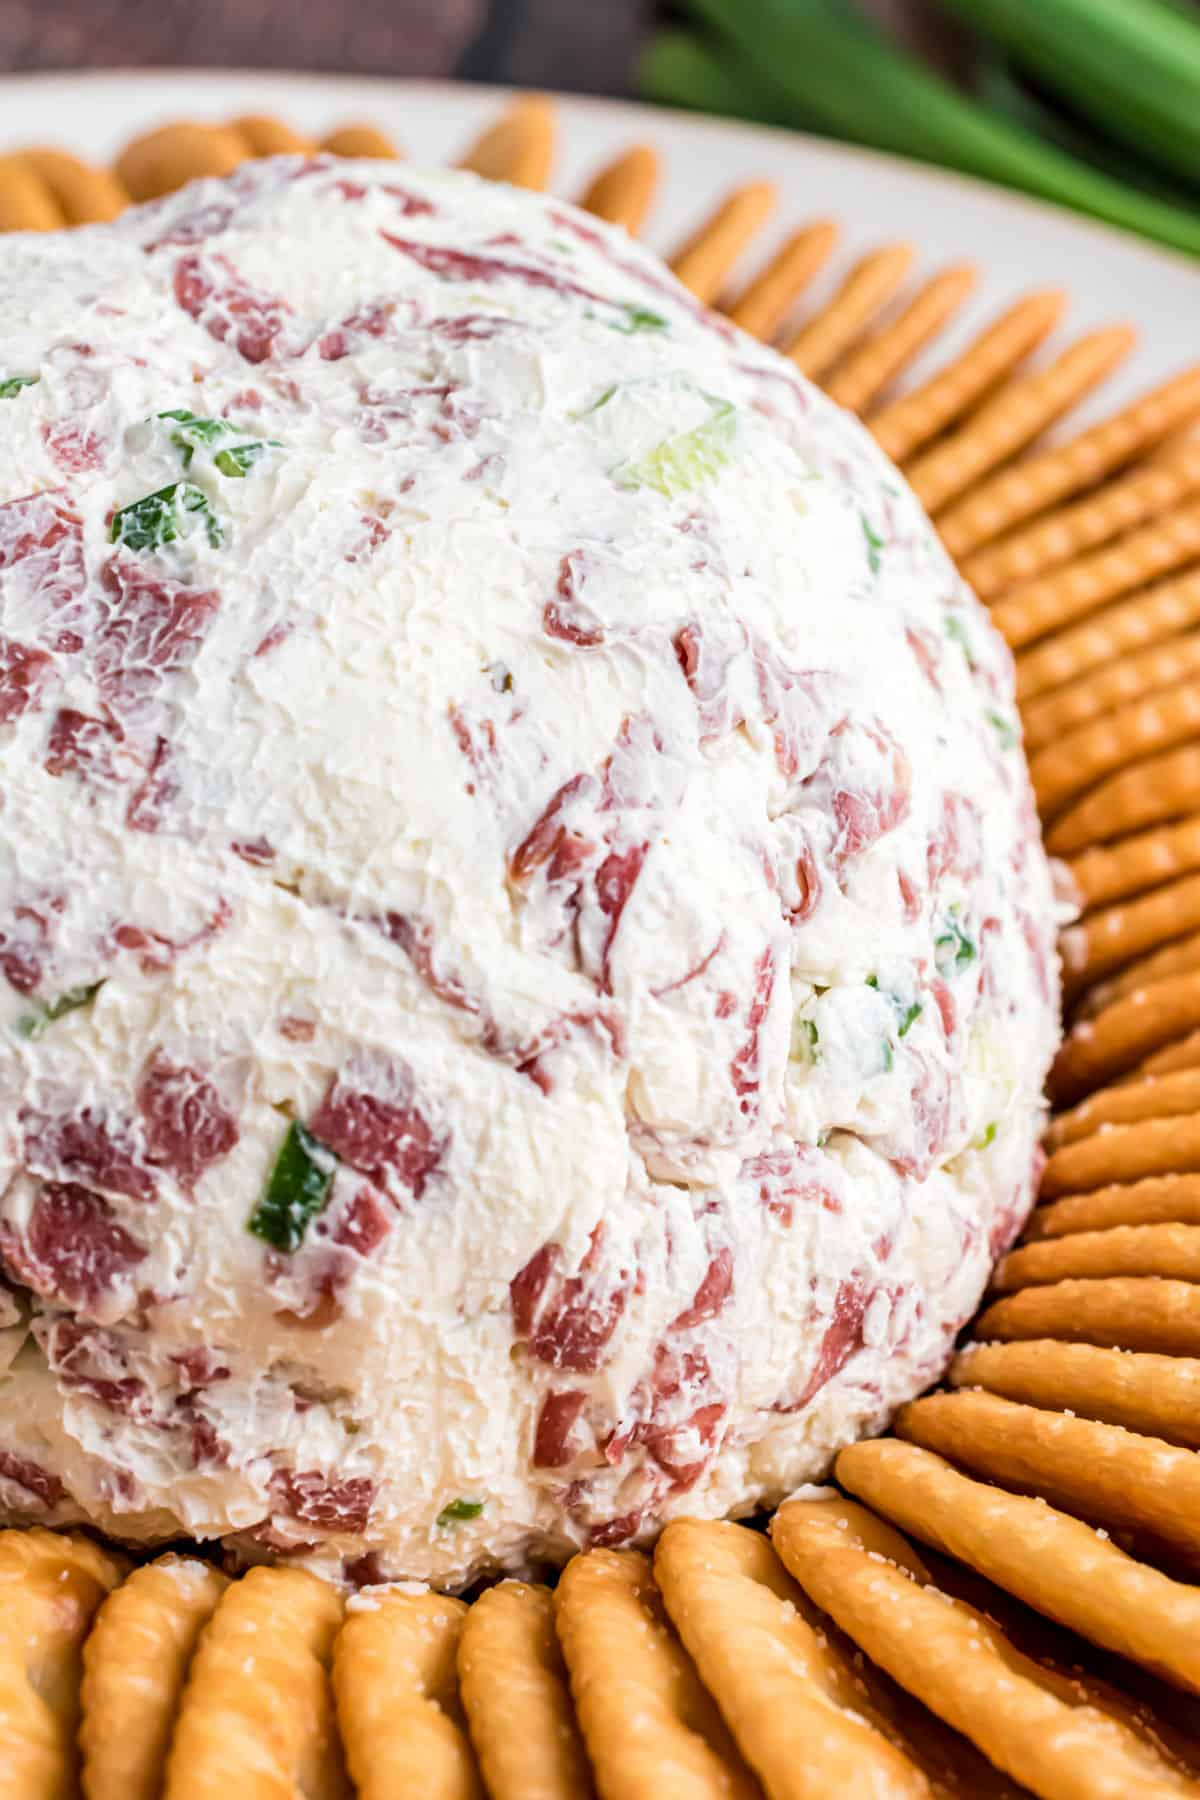 Chipped beef cheese ball served on a platter with buttery townhouse crackers.